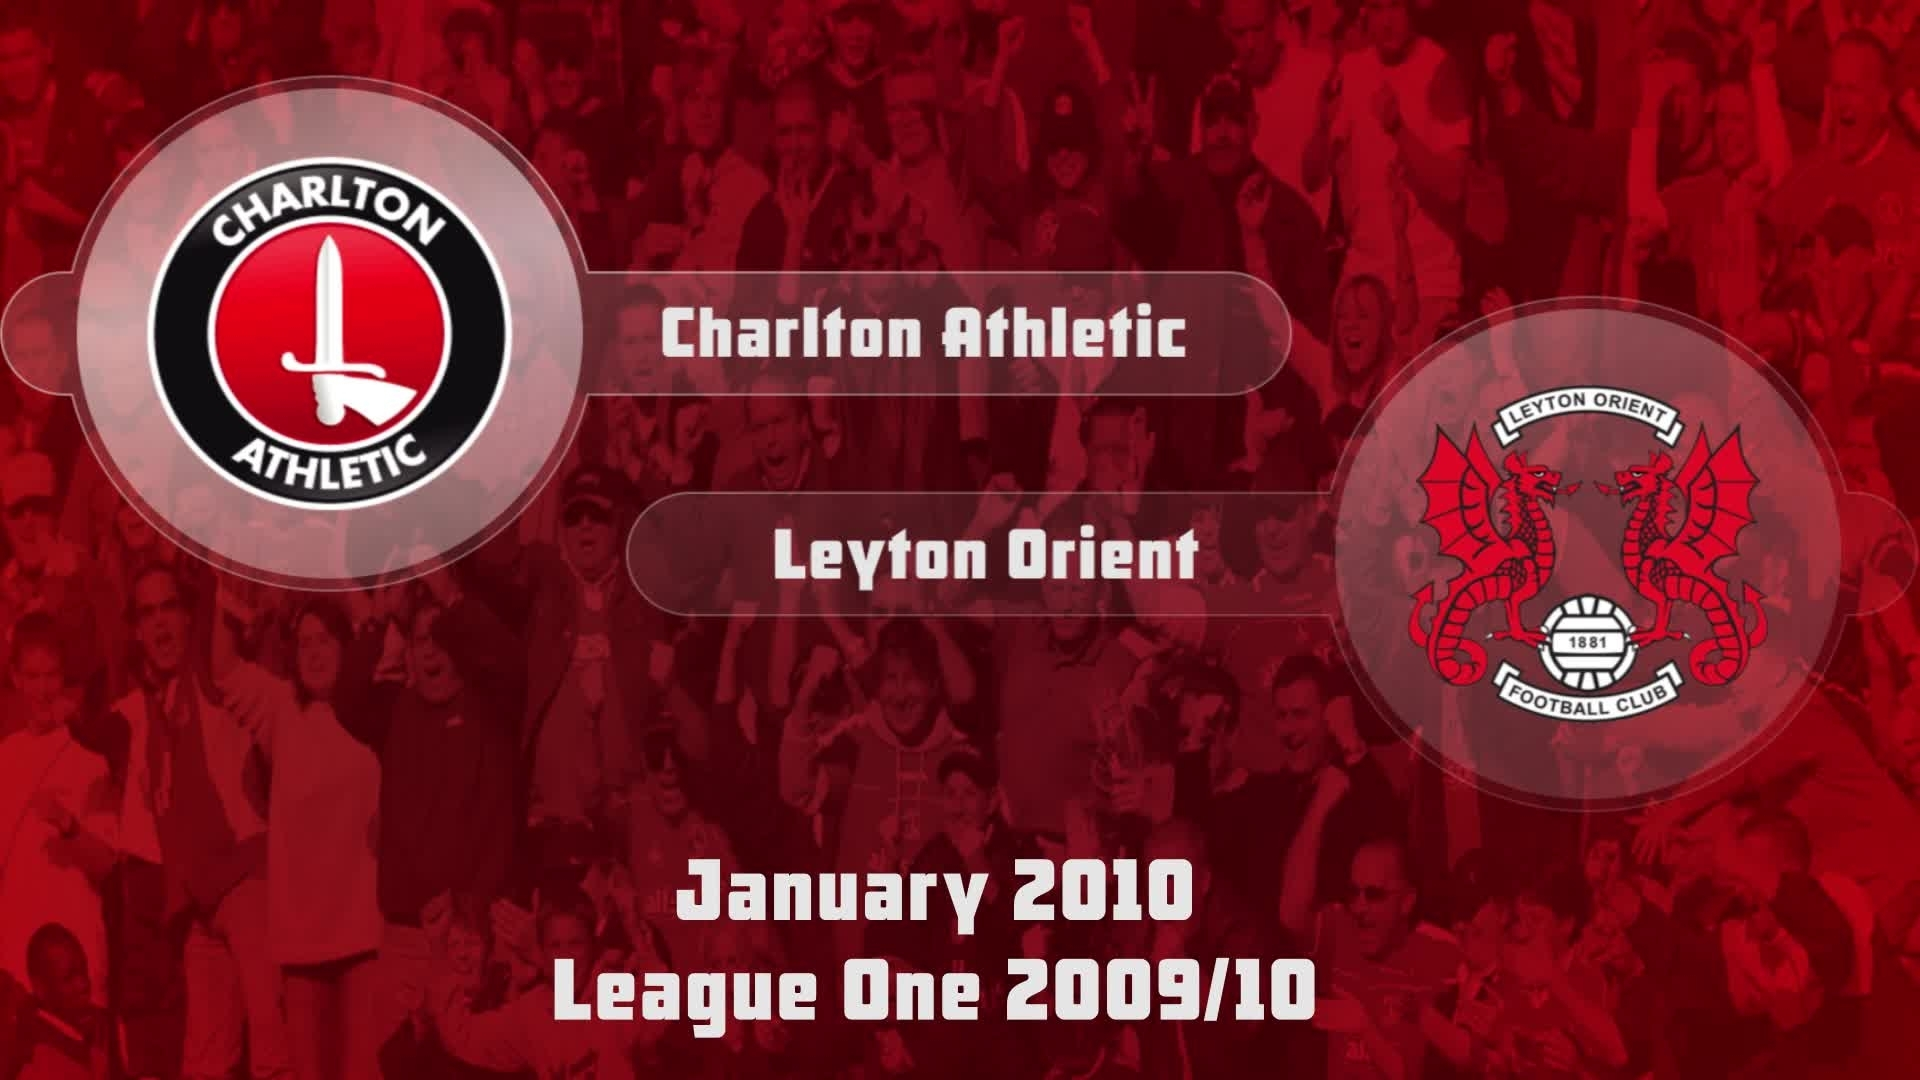 31 HIGHLIGHTS | Charlton 0 Leyton Orient 1 (Jan 2010)